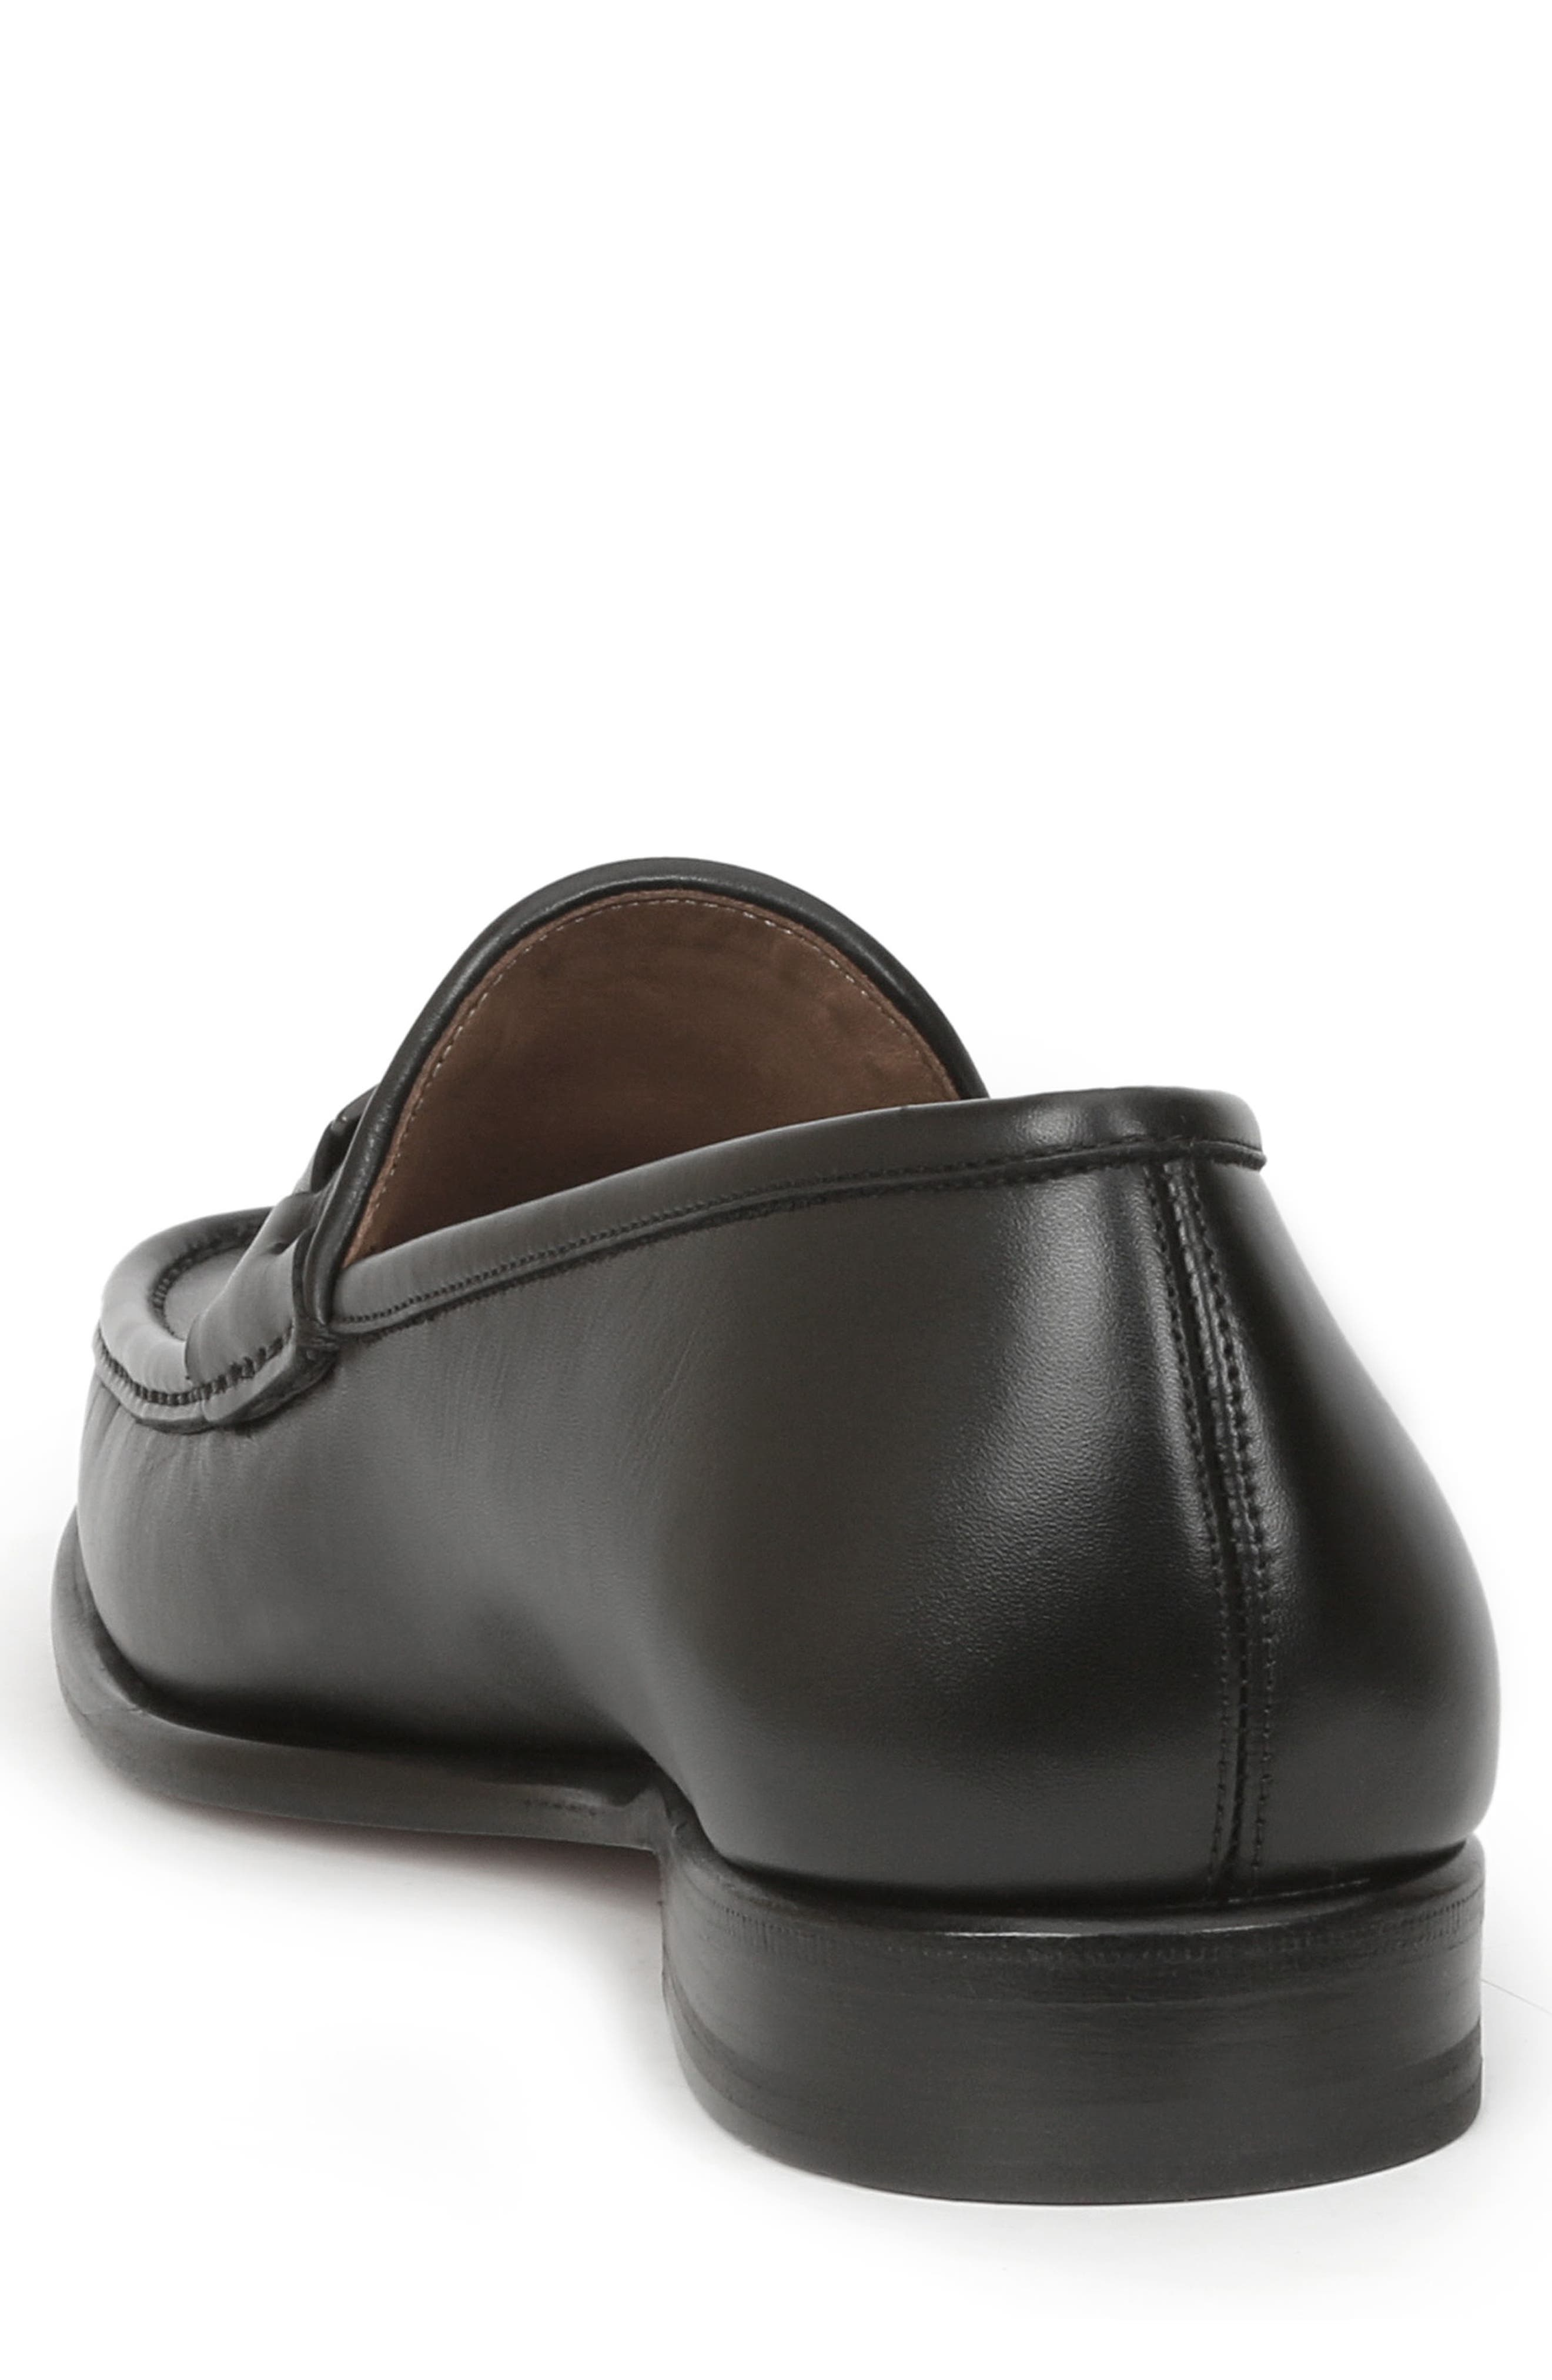 Enzo Bit Loafer,                             Alternate thumbnail 2, color,                             Black